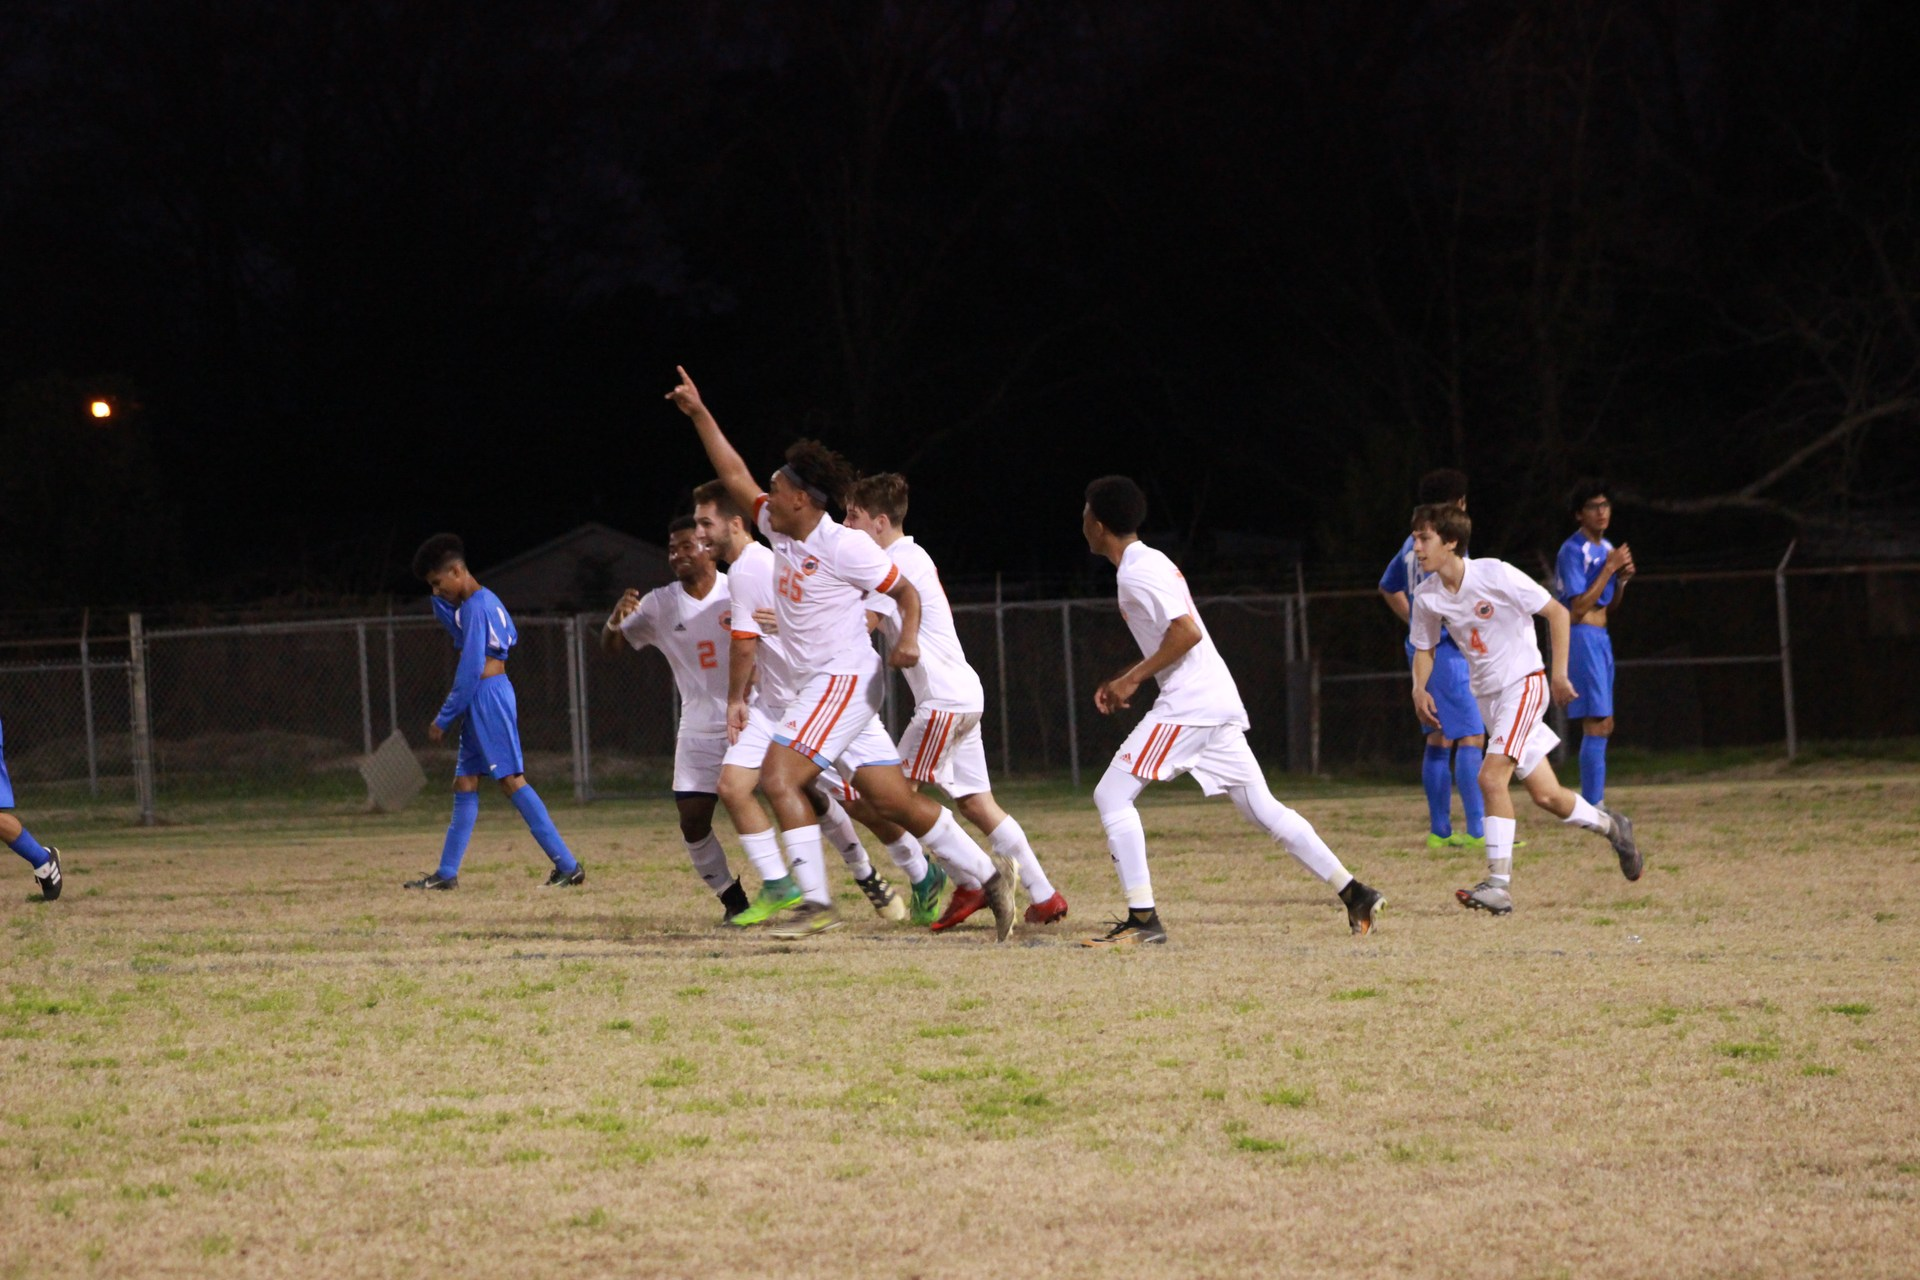 The soccer prepare for the next play.